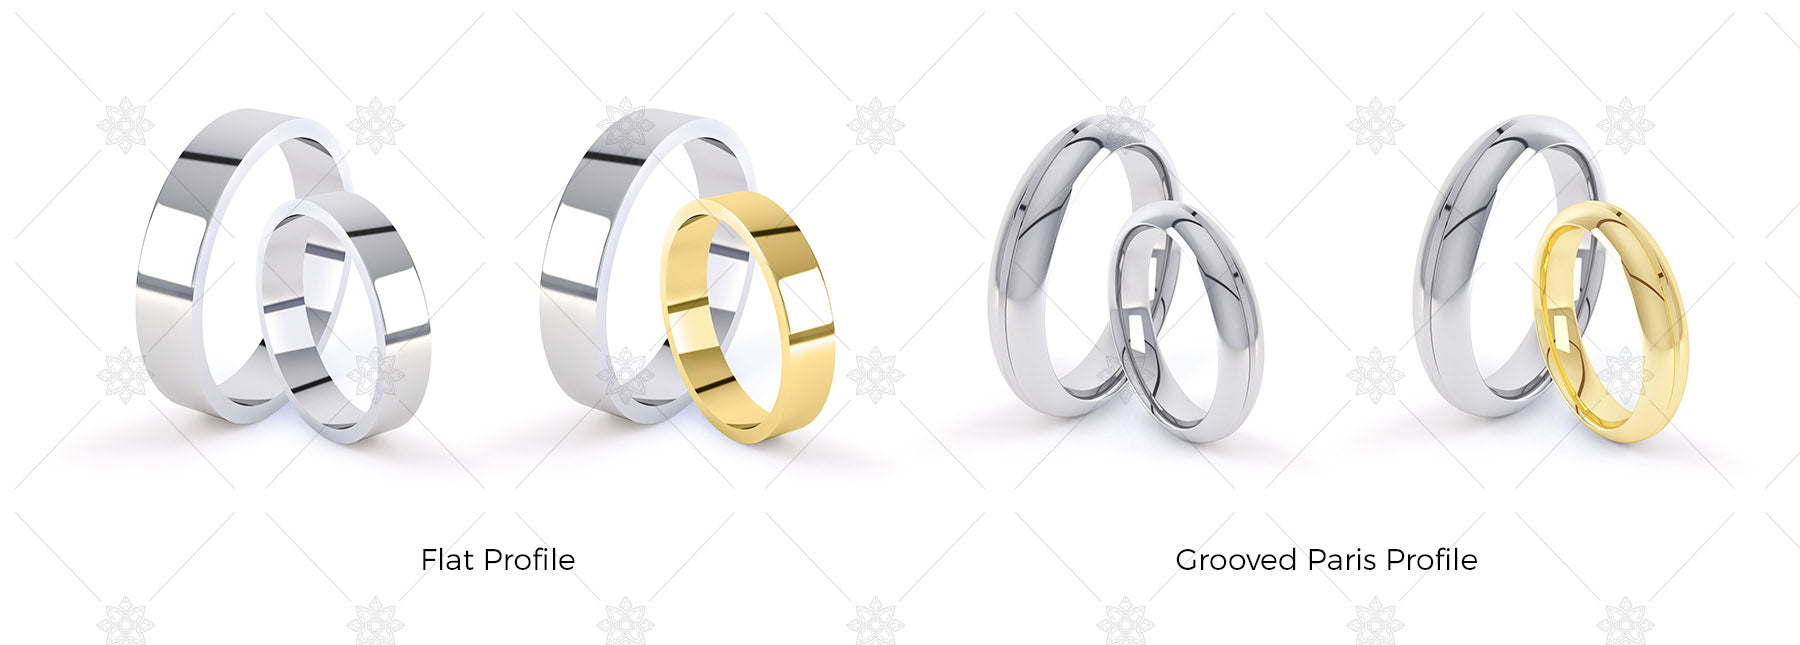 Wedding rings double profile images retail pack